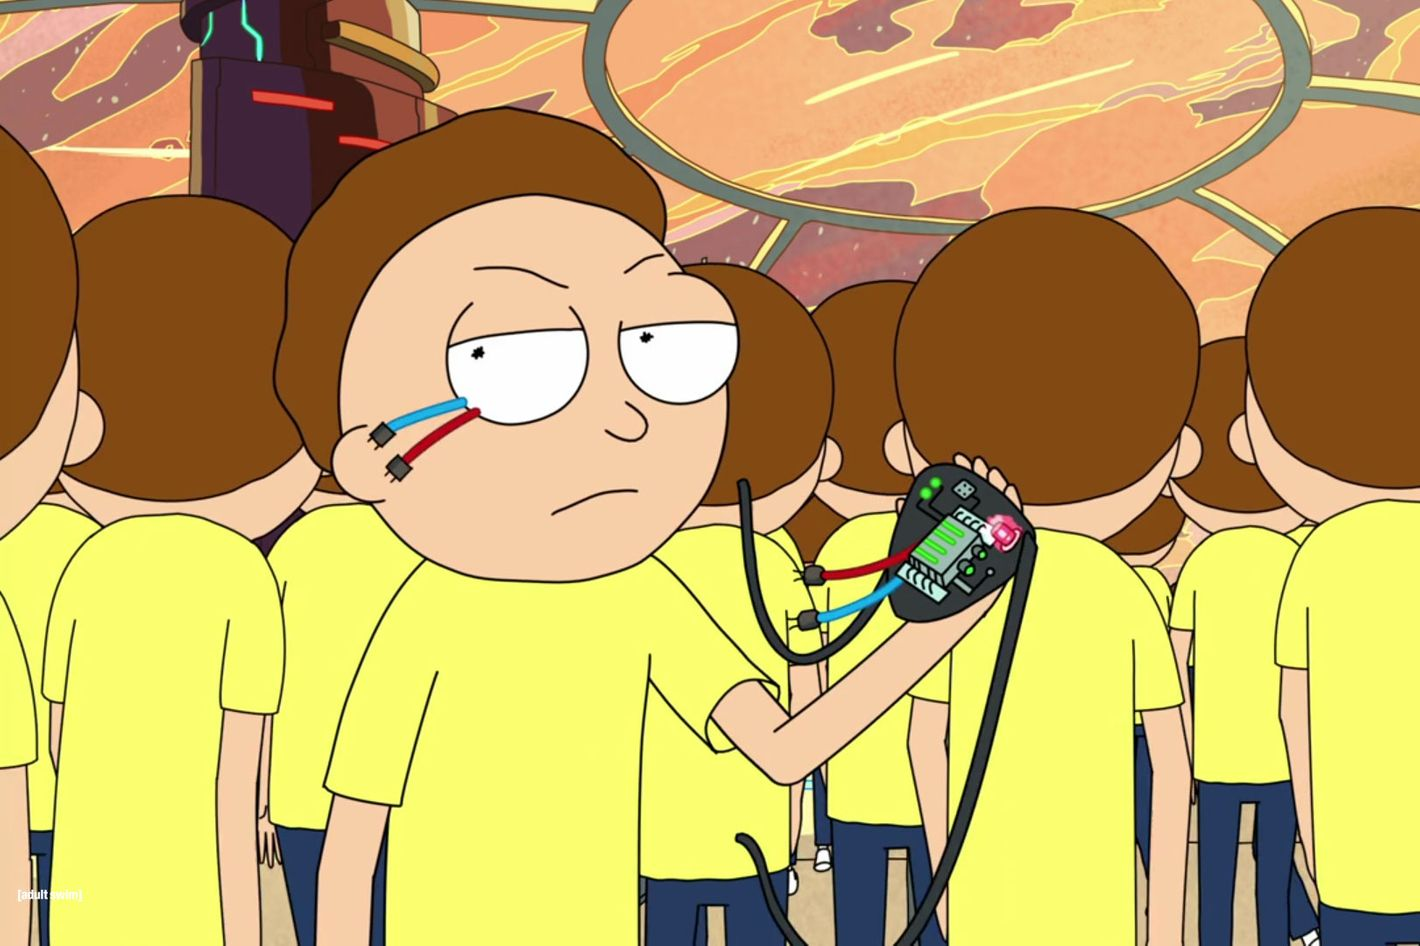 Best Rick And Morty Quotes Evil Morty Theories A Guide To The 'rick And Morty' Villain